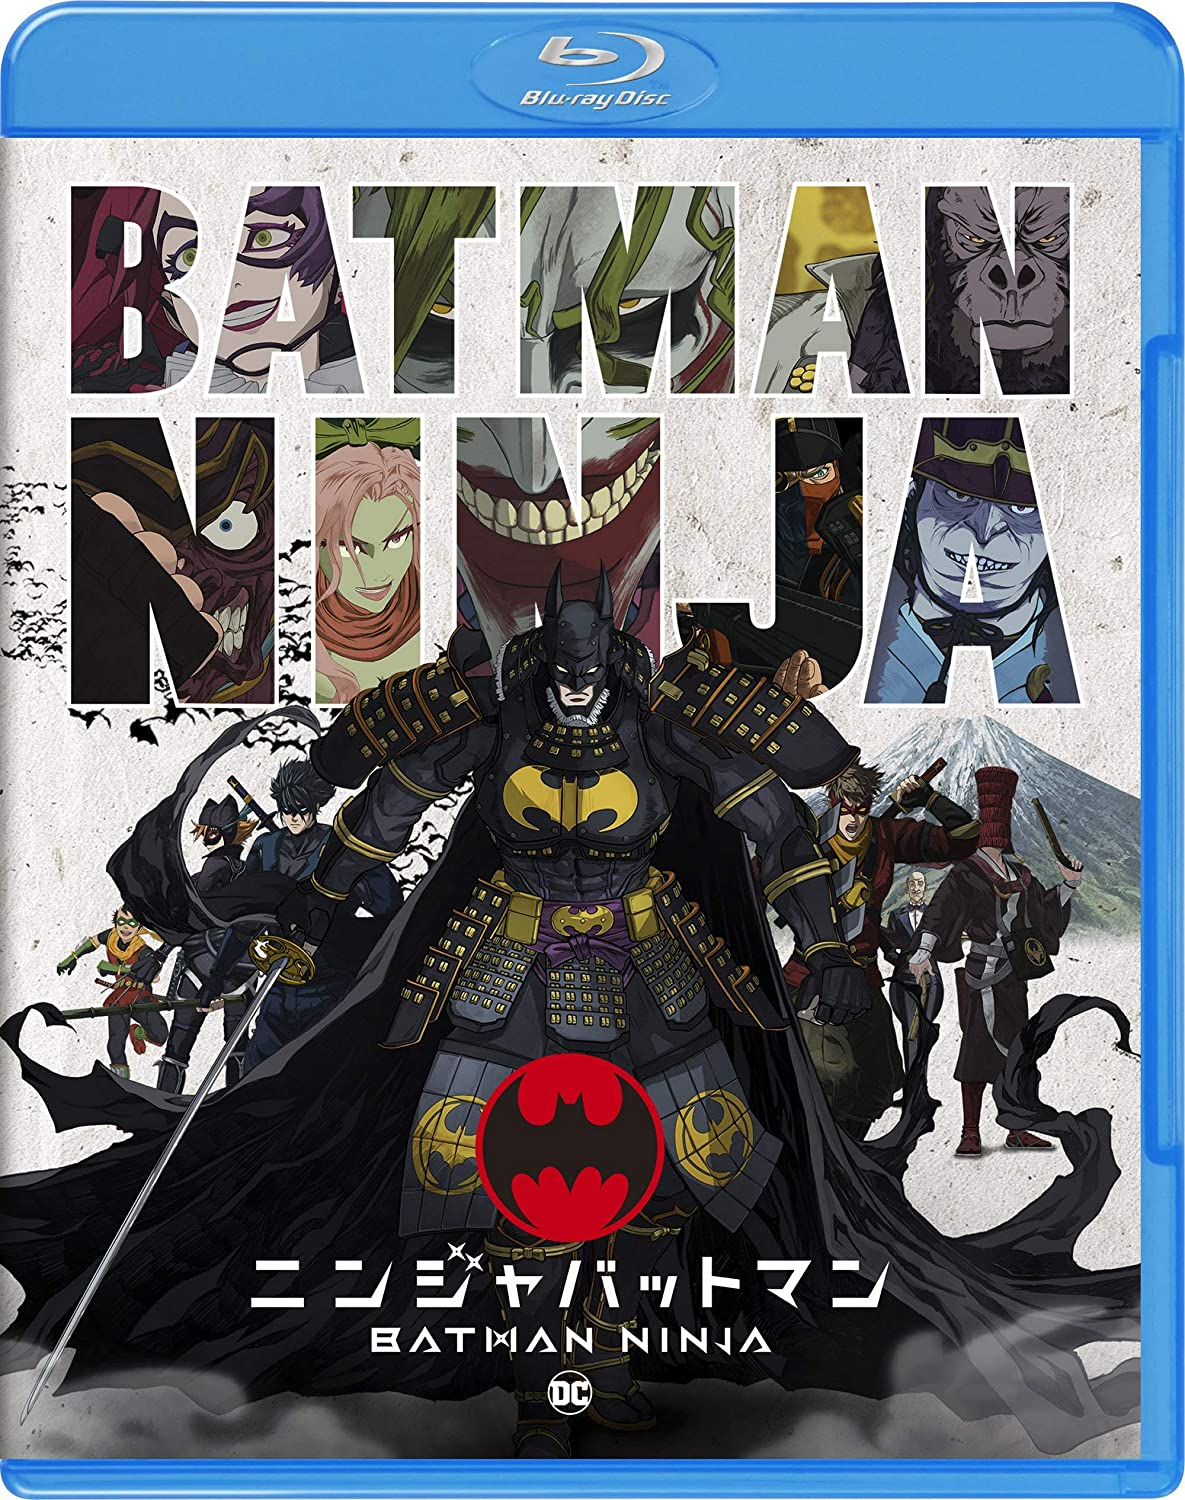 Amazon.com: Ninja Batman [Blu-ray] JAPANESE EDITION: Movies & TV